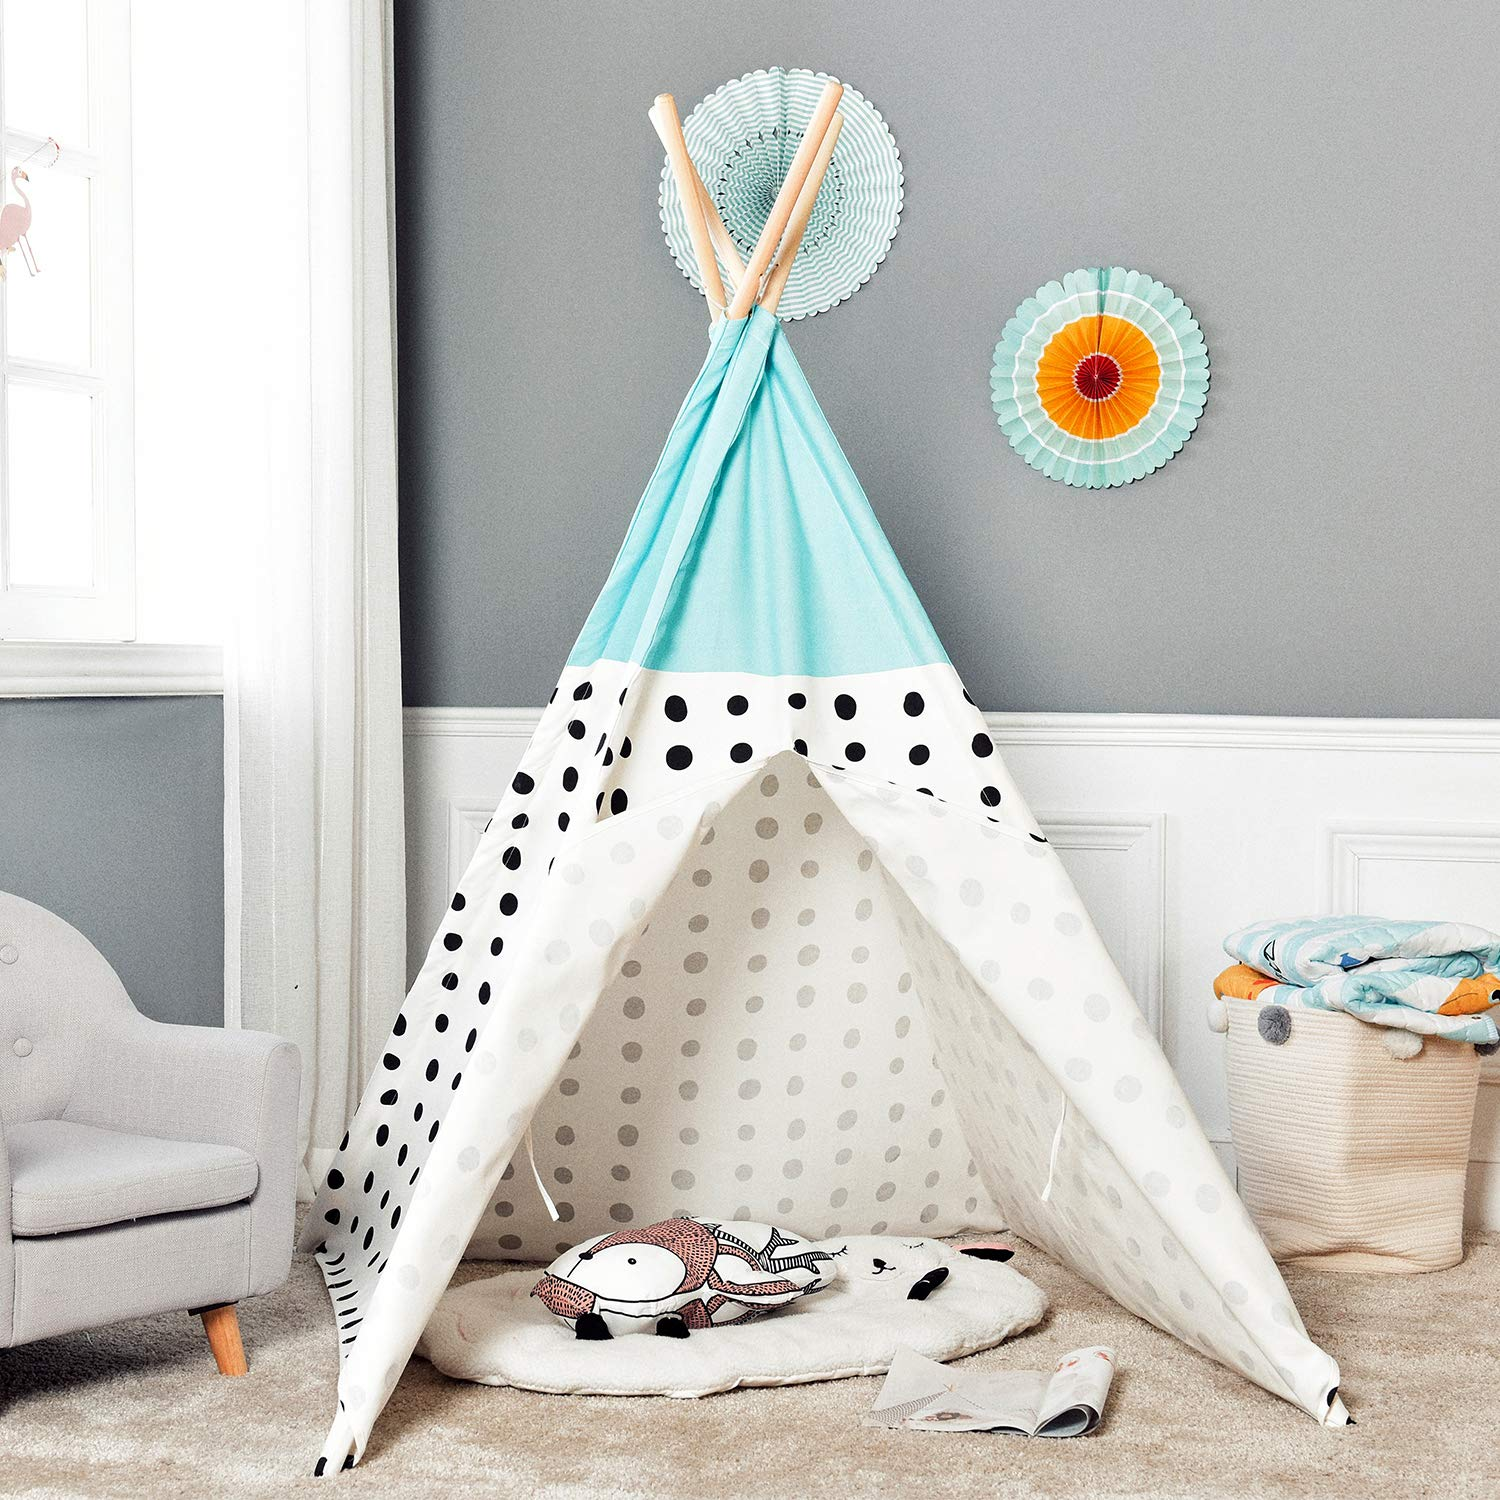 (Blue Top) - Asweets Teepee Tent for Kids Teepee Play Tent Mat for Boys Indoor Outdoor Play House Tent Indian Canvas Tipi Tent Blue Top Black Point  Blue Top B07K754D1V